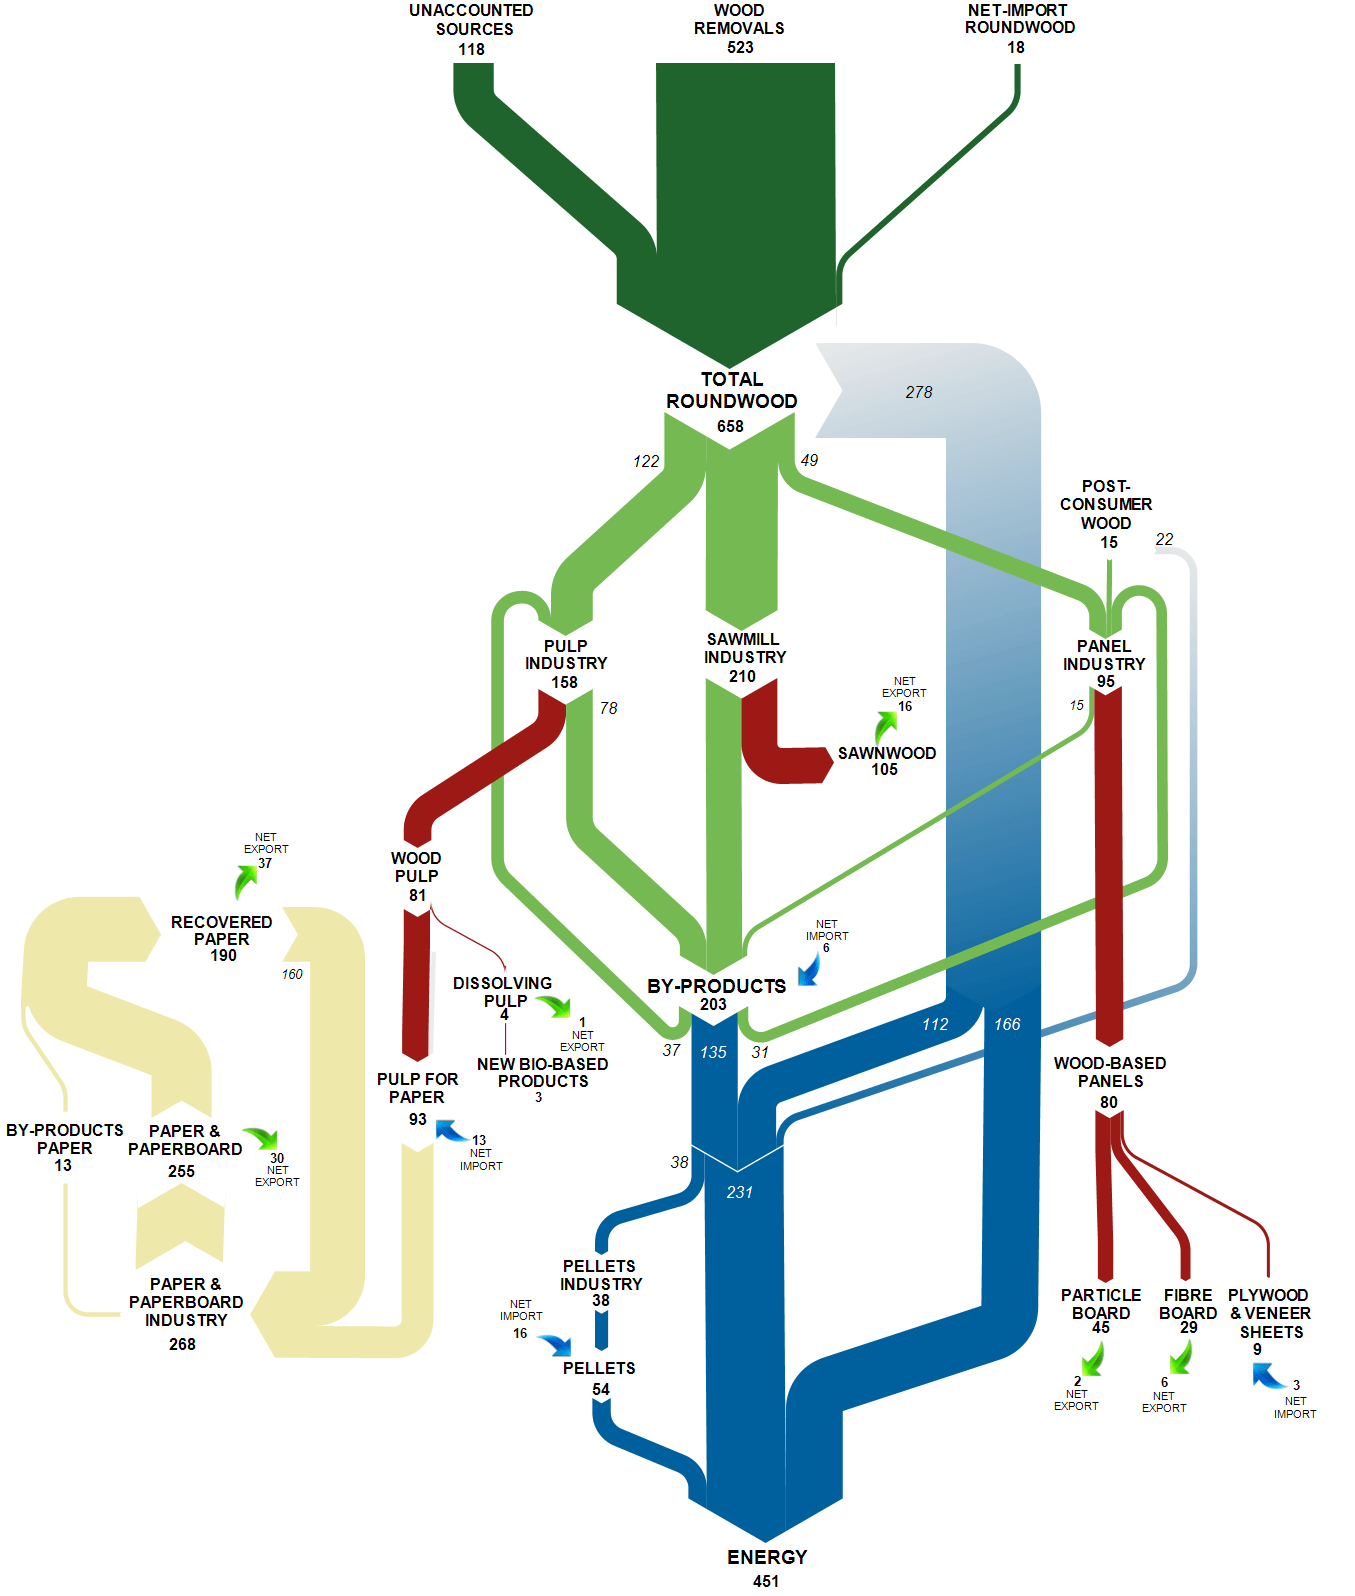 hight resolution of forest biomass flow diagram in million tons of solid wood equivalent for the 28 eu member states in 2015